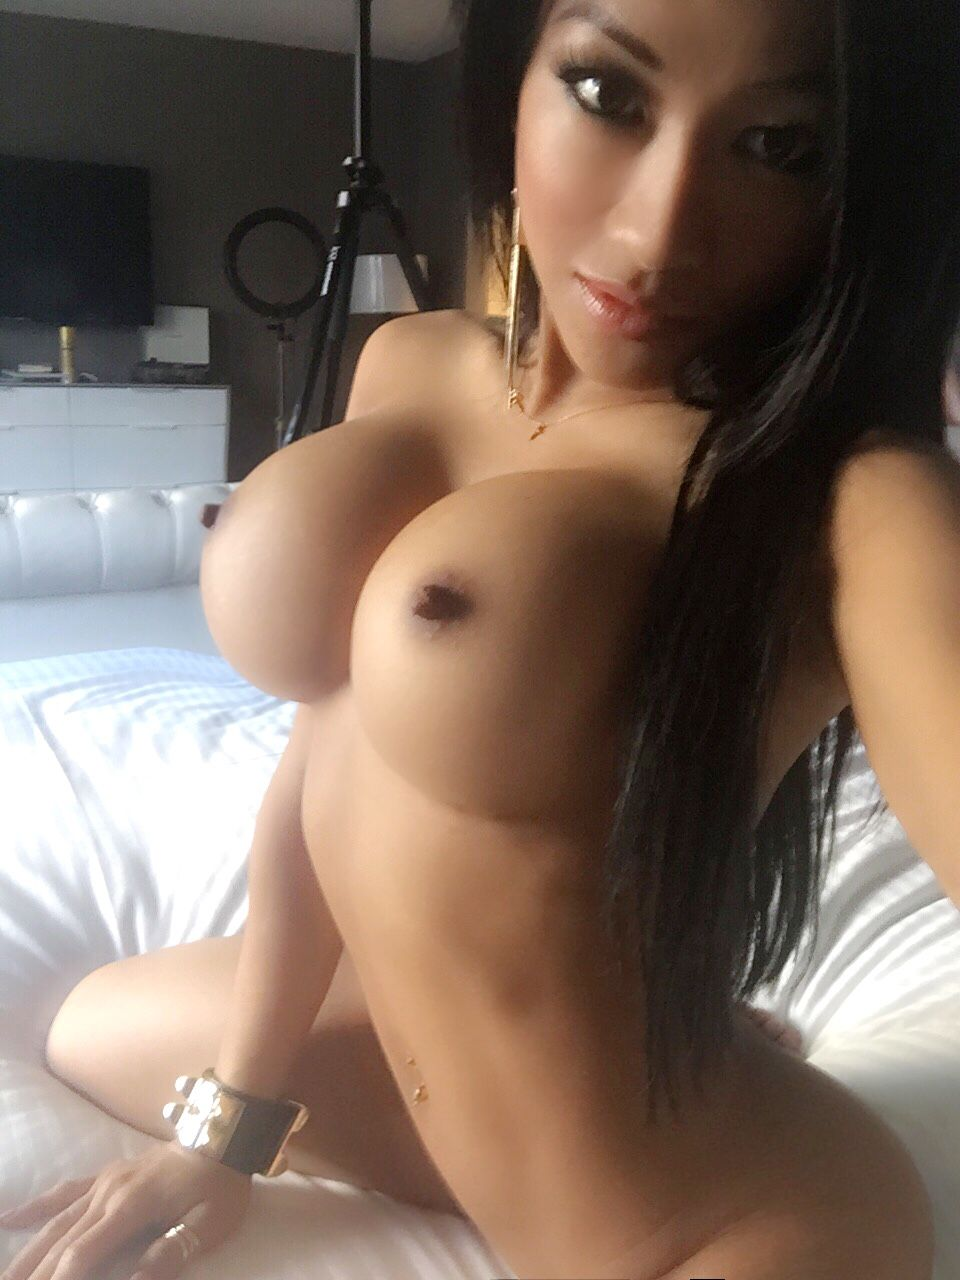 exotic girl with huge tits taking selfies - real amateur girls